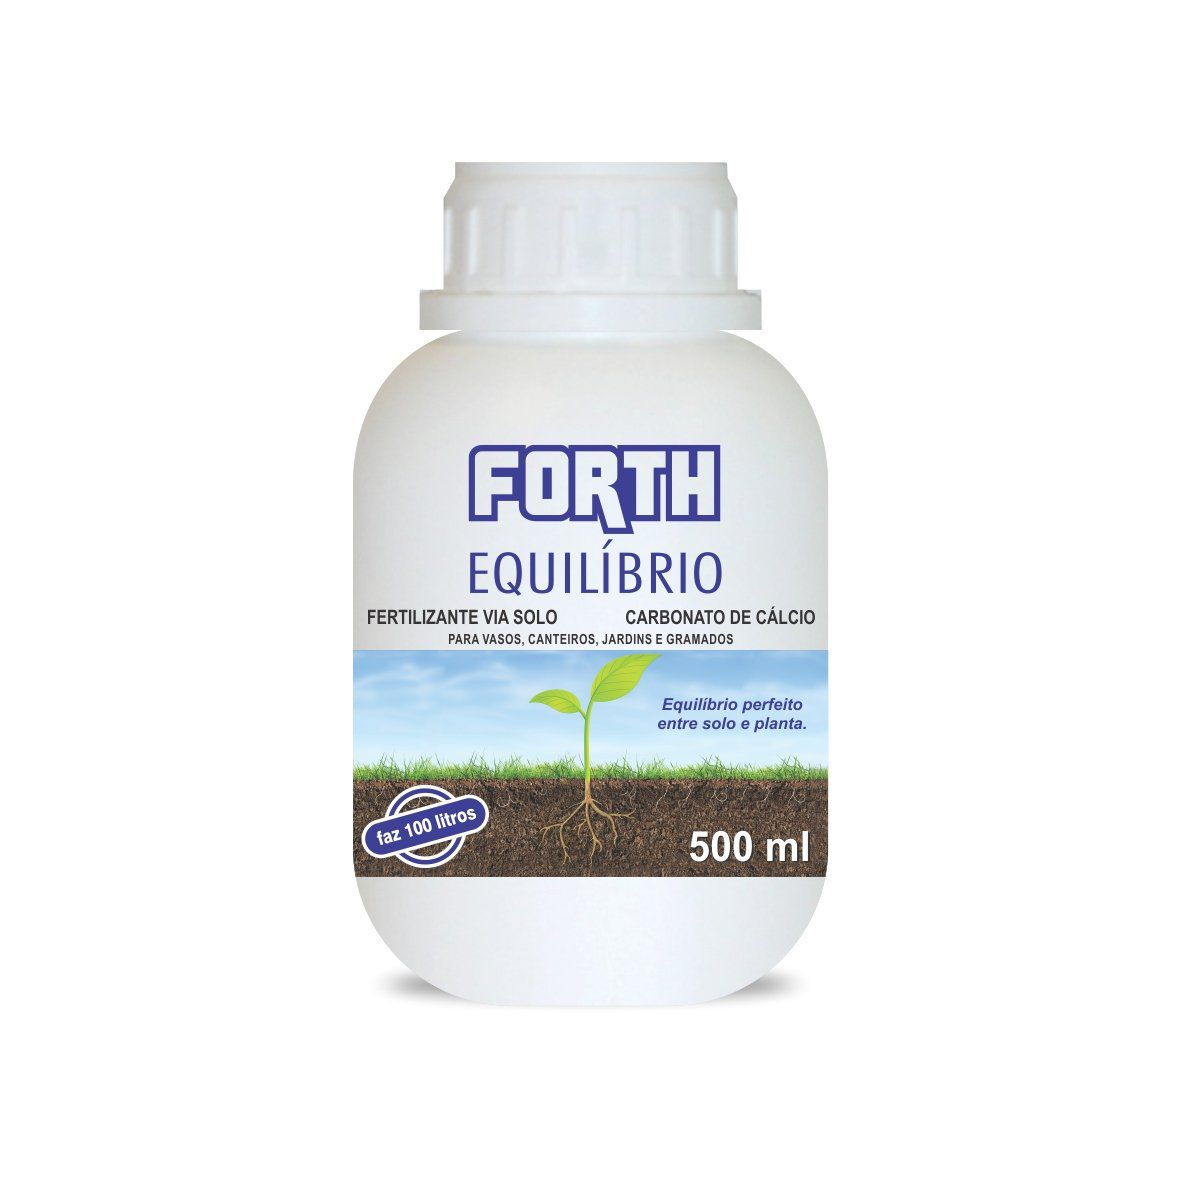 Fertilizante via solo Forth Equilíbrio 500ml concentrado (Carbonato de Cálcio)